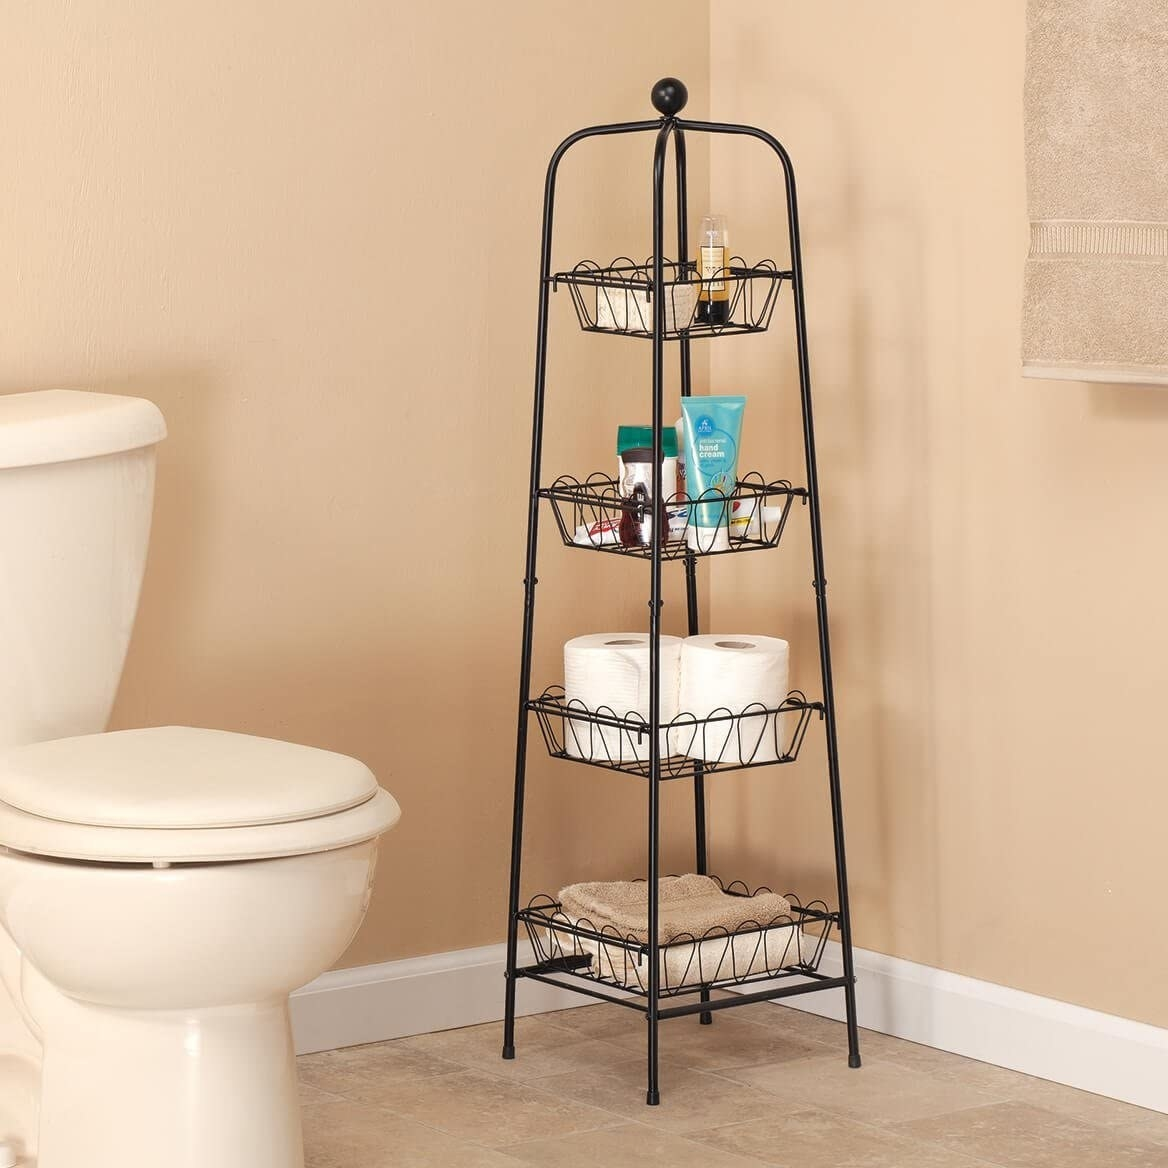 the four tier metal organizer holding toiletries in a bathroom